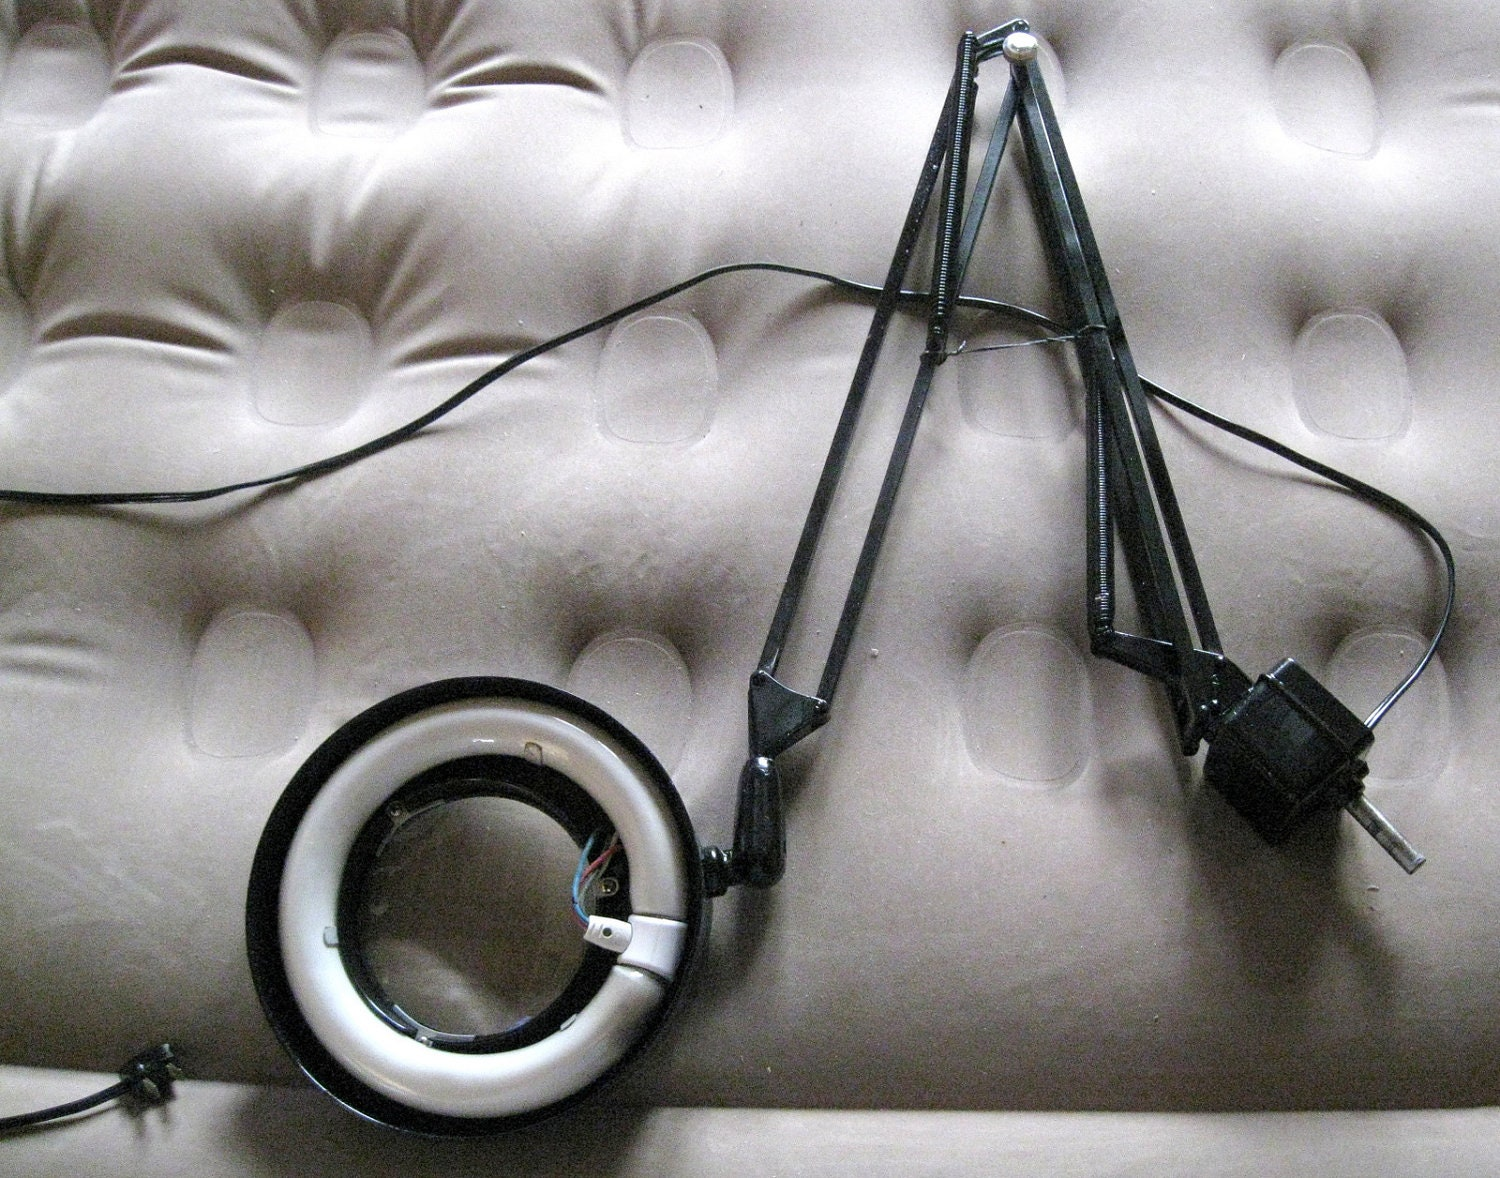 Articulating Lamp Parts Unavailable Listing on Etsy